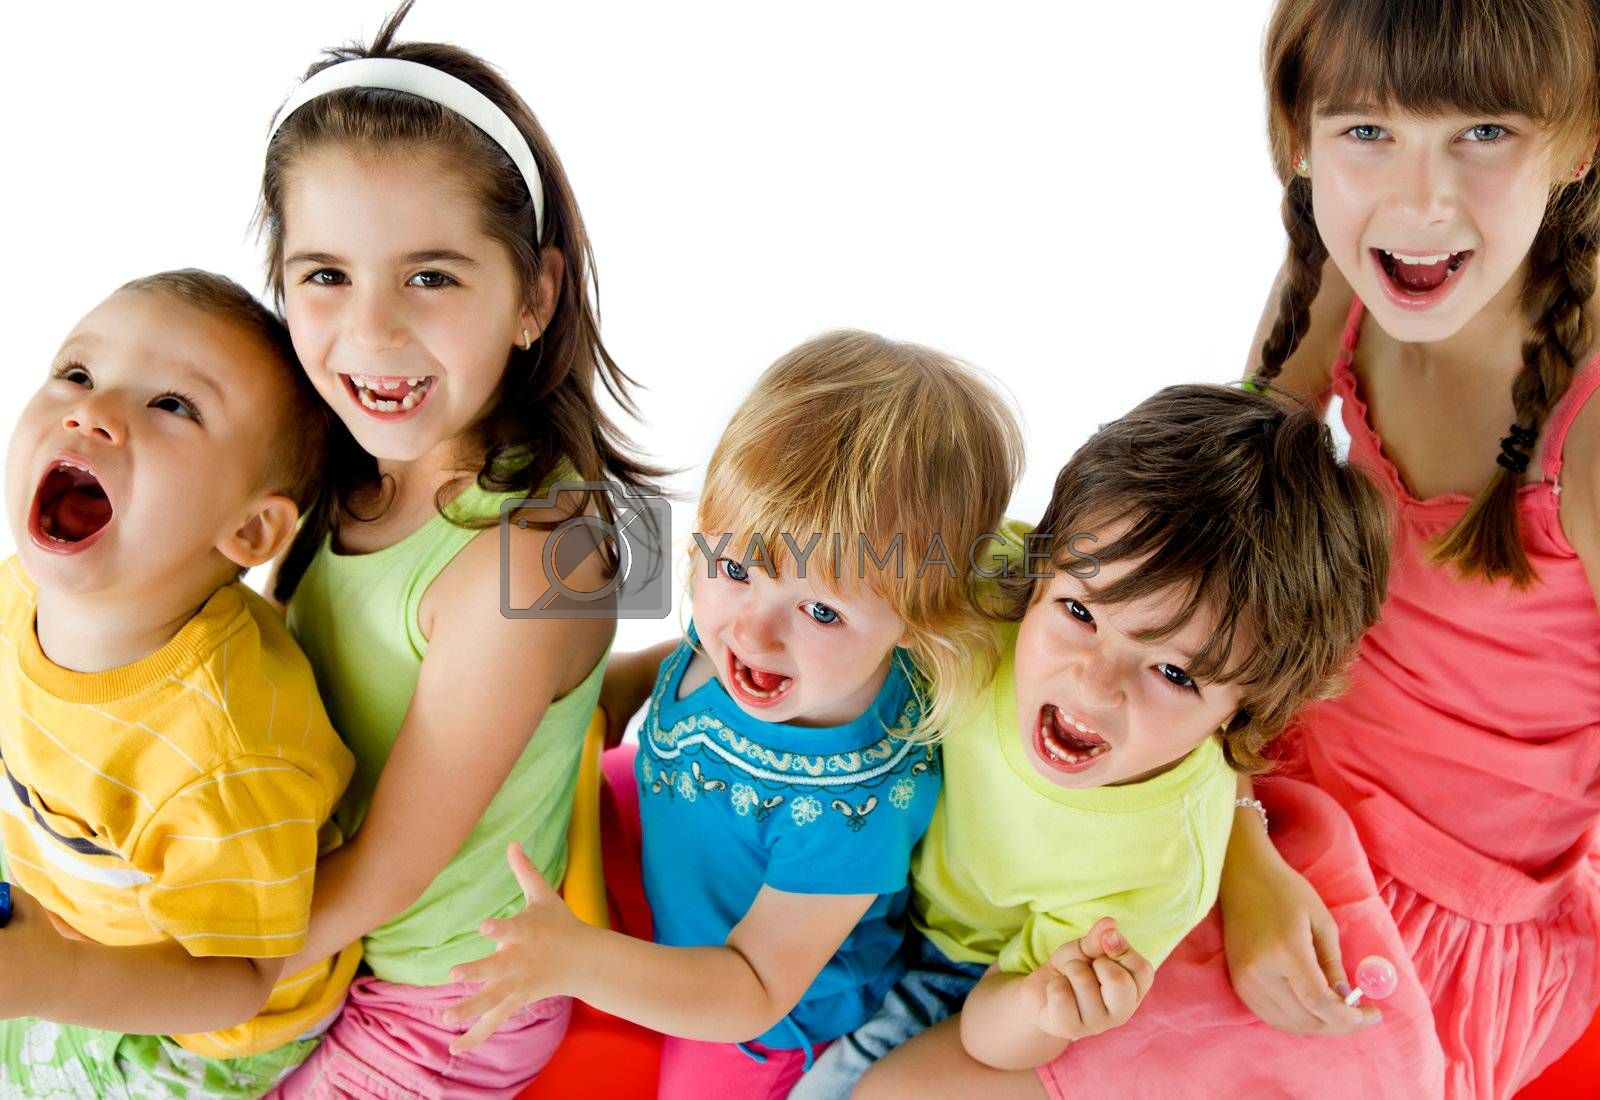 Group of five happy kids sitting, smiling and screaming looking up at camera